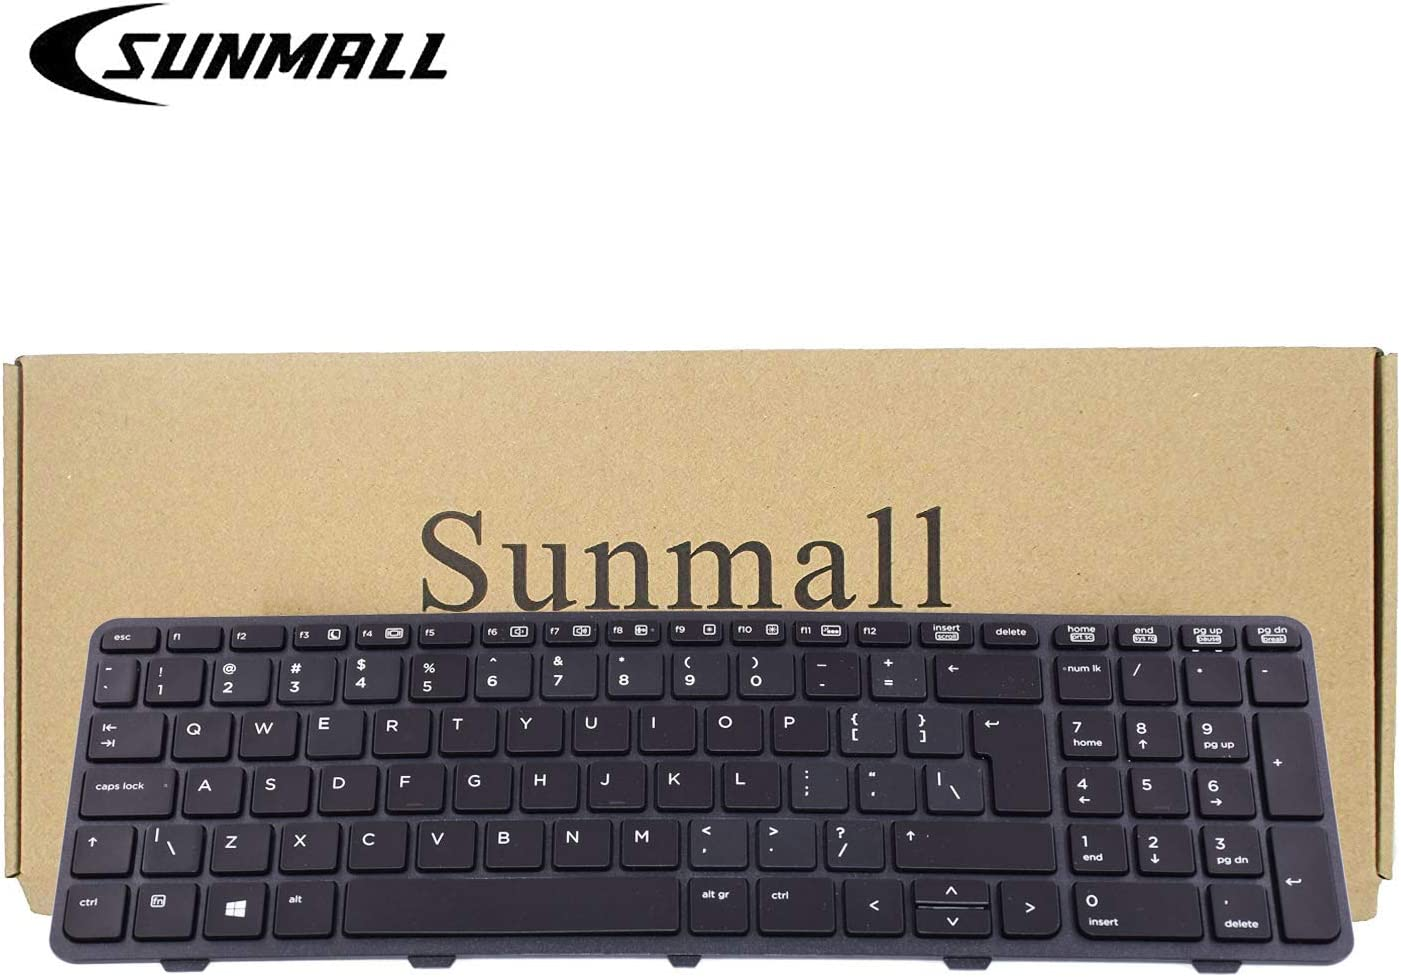 SUNMALL New Laptop Keyboard Replacement with Backlit and Big Enter Key Compatible with HP Probook 450 G0 450 G1 Series Black US Layout